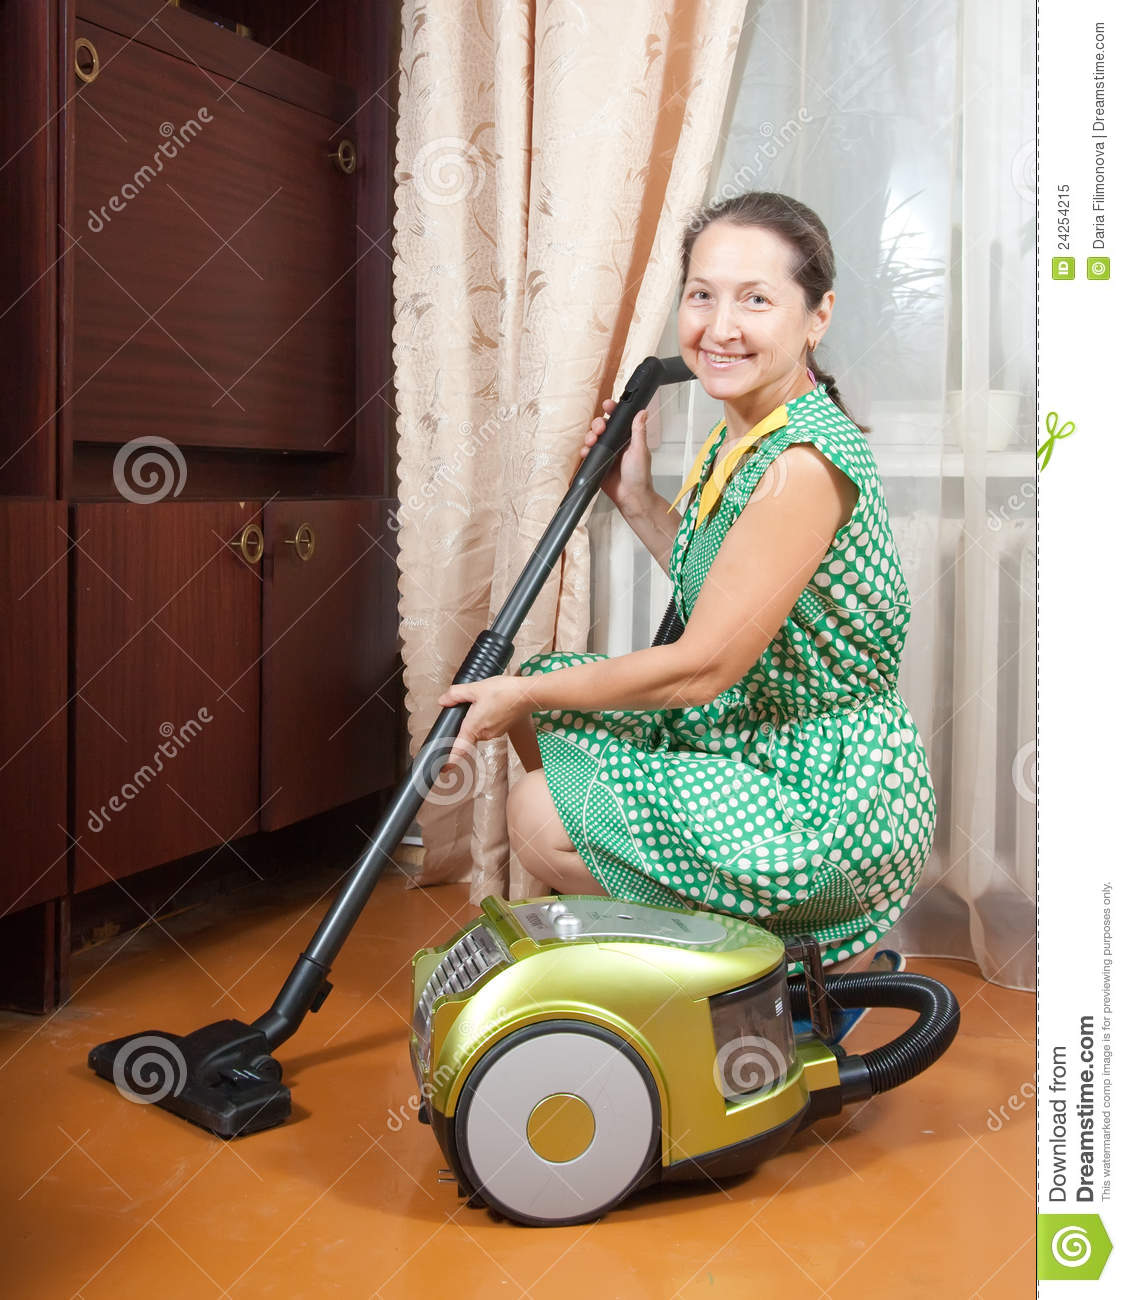 Woman Vacuuming Stock Image Image Of Cleaning Floor